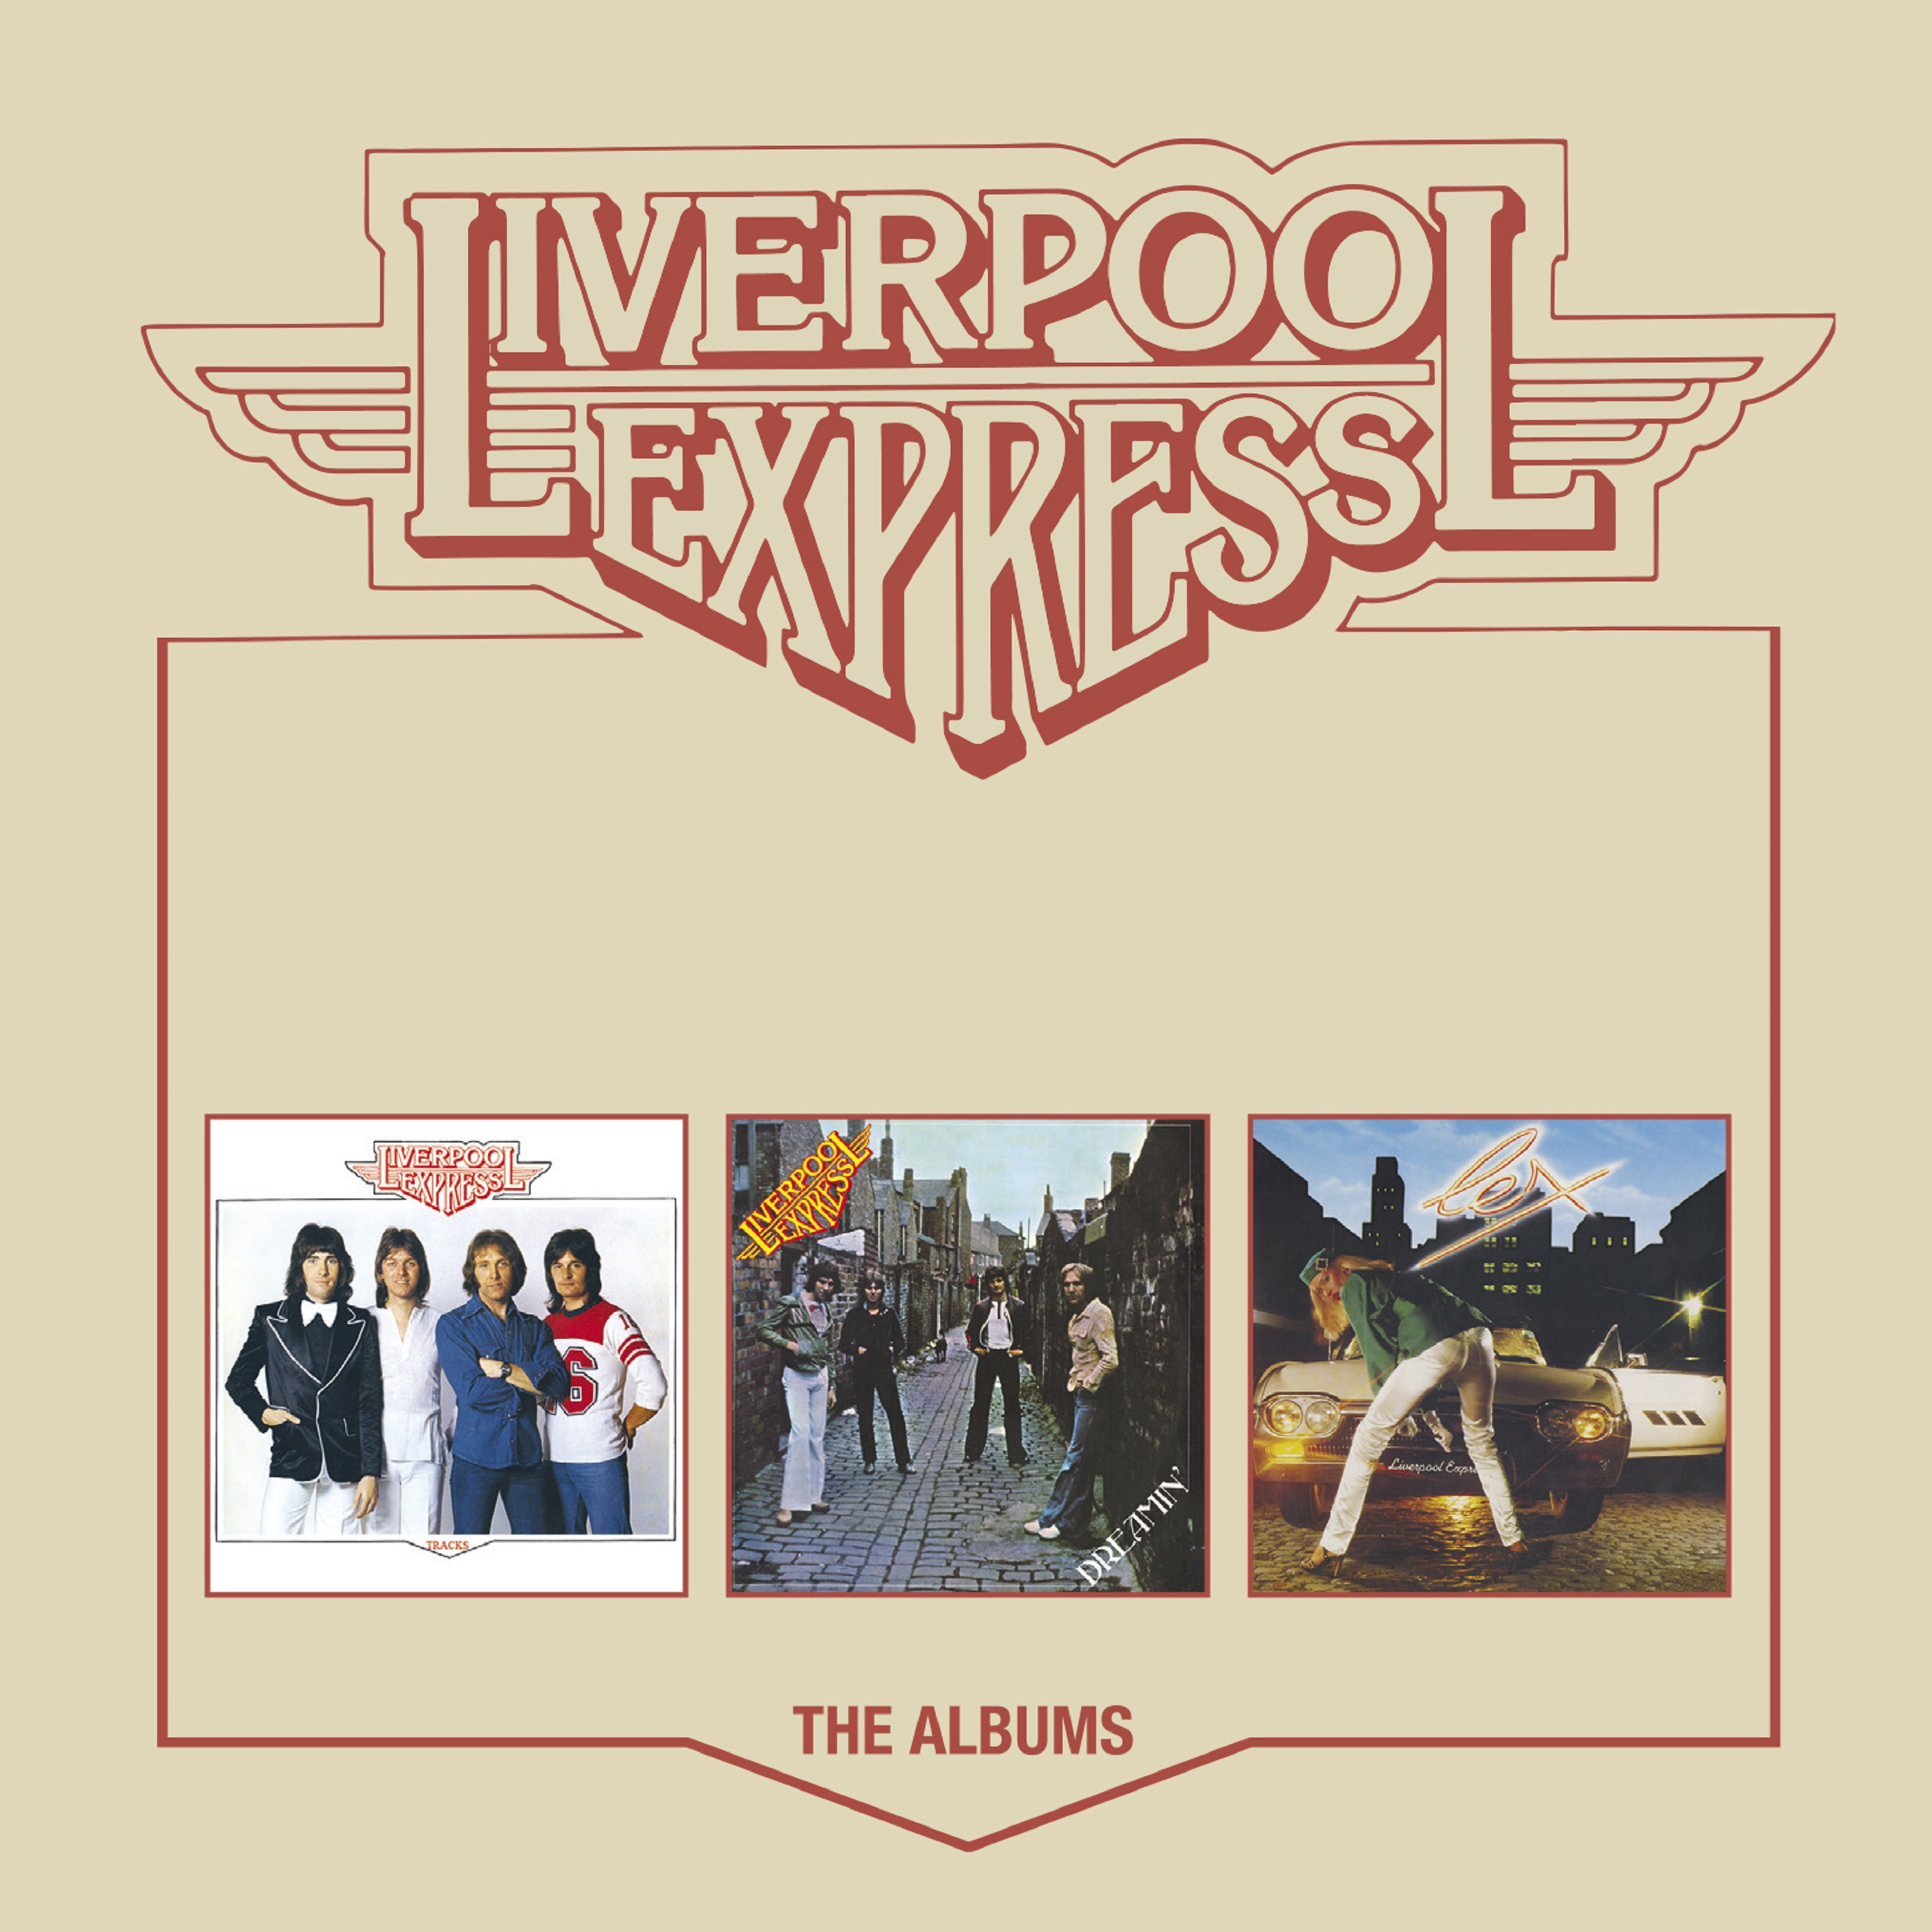 Liverpool Express - The Albums: 3CD Box Set - Cherry Red Records